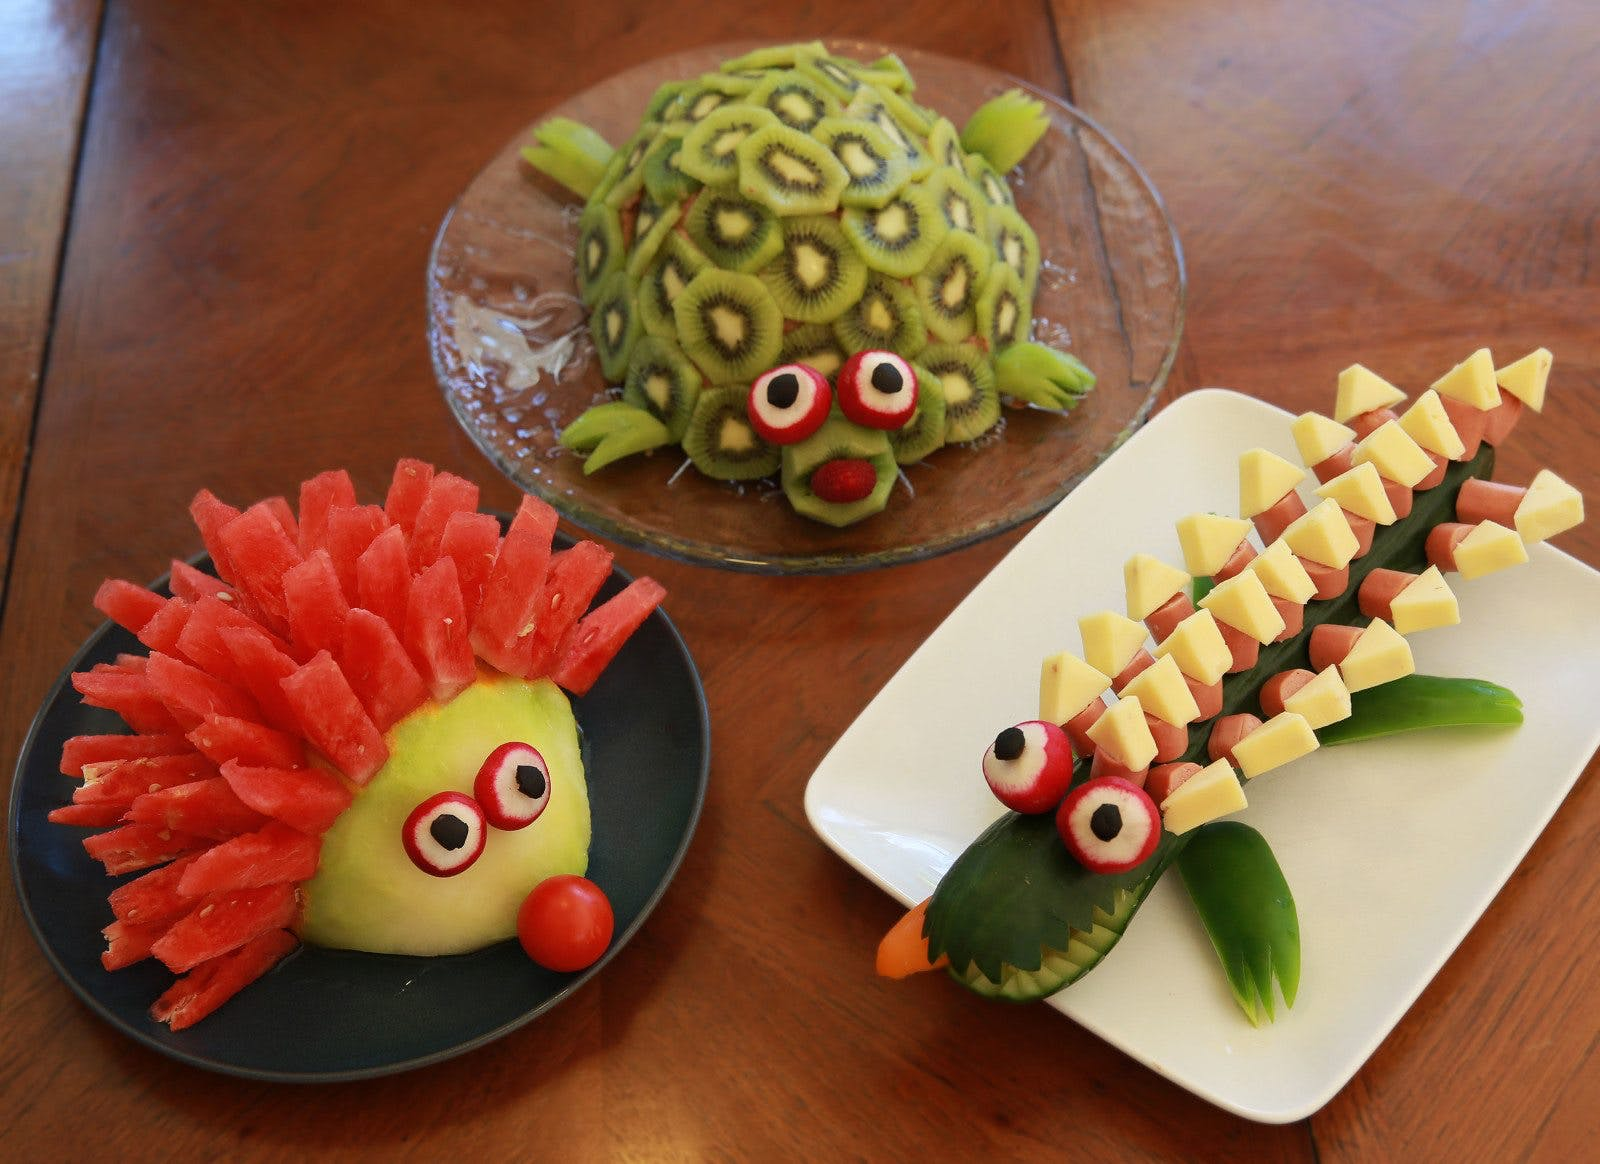 4-Year-Old's Party with Animal Cakes – and Not Much Sugar